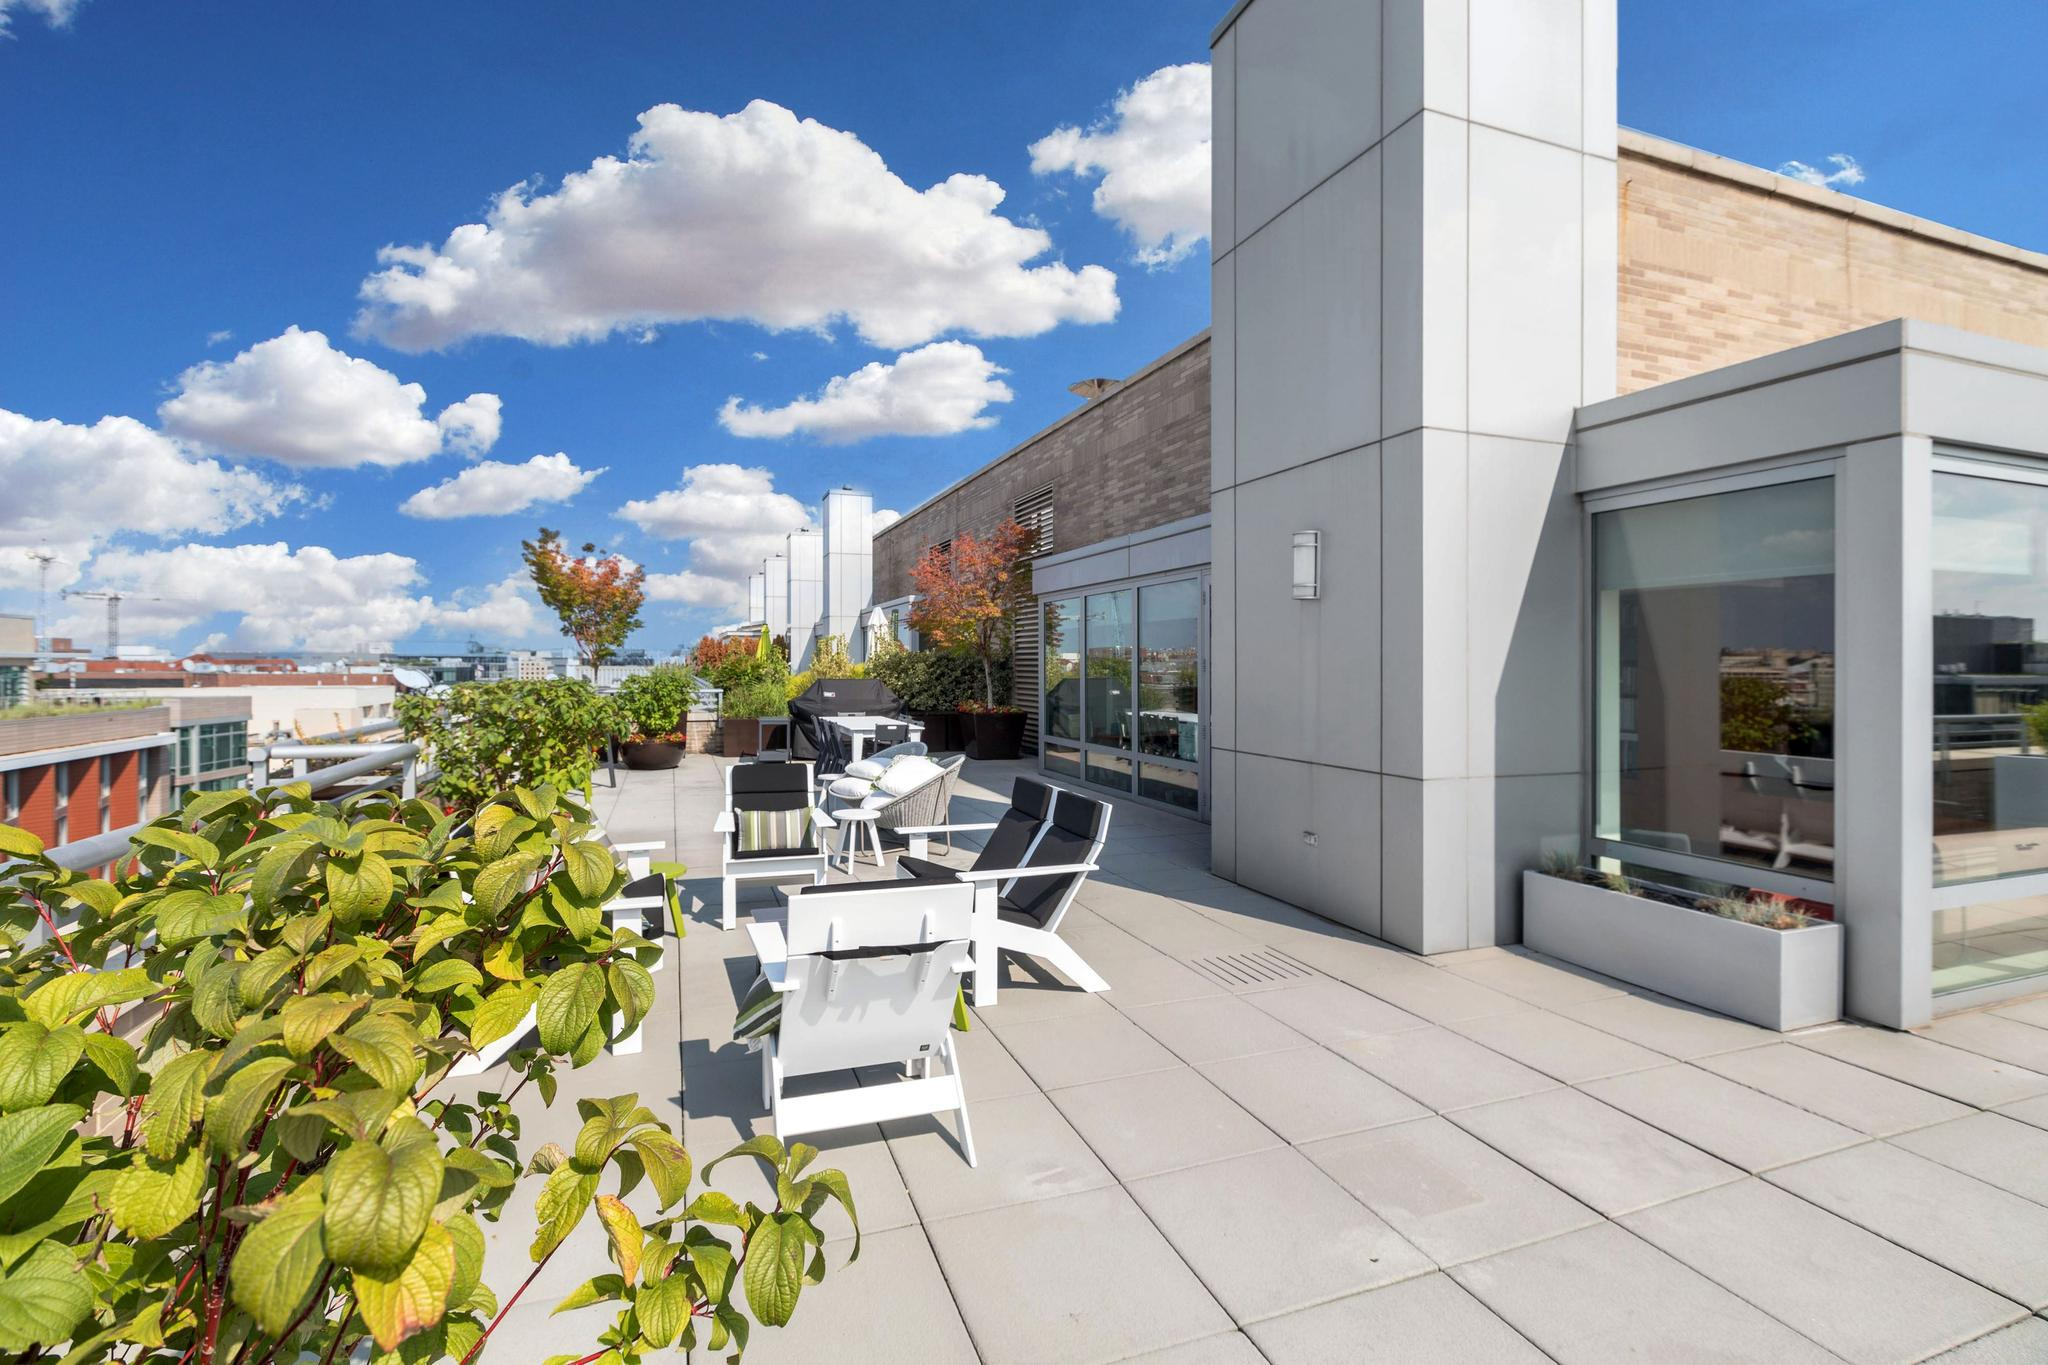 Penthouse for Sale at 1155 23rd St NW #ph3a 1155 23rd St NW #ph3a Washington, District Of Columbia 20037 United States